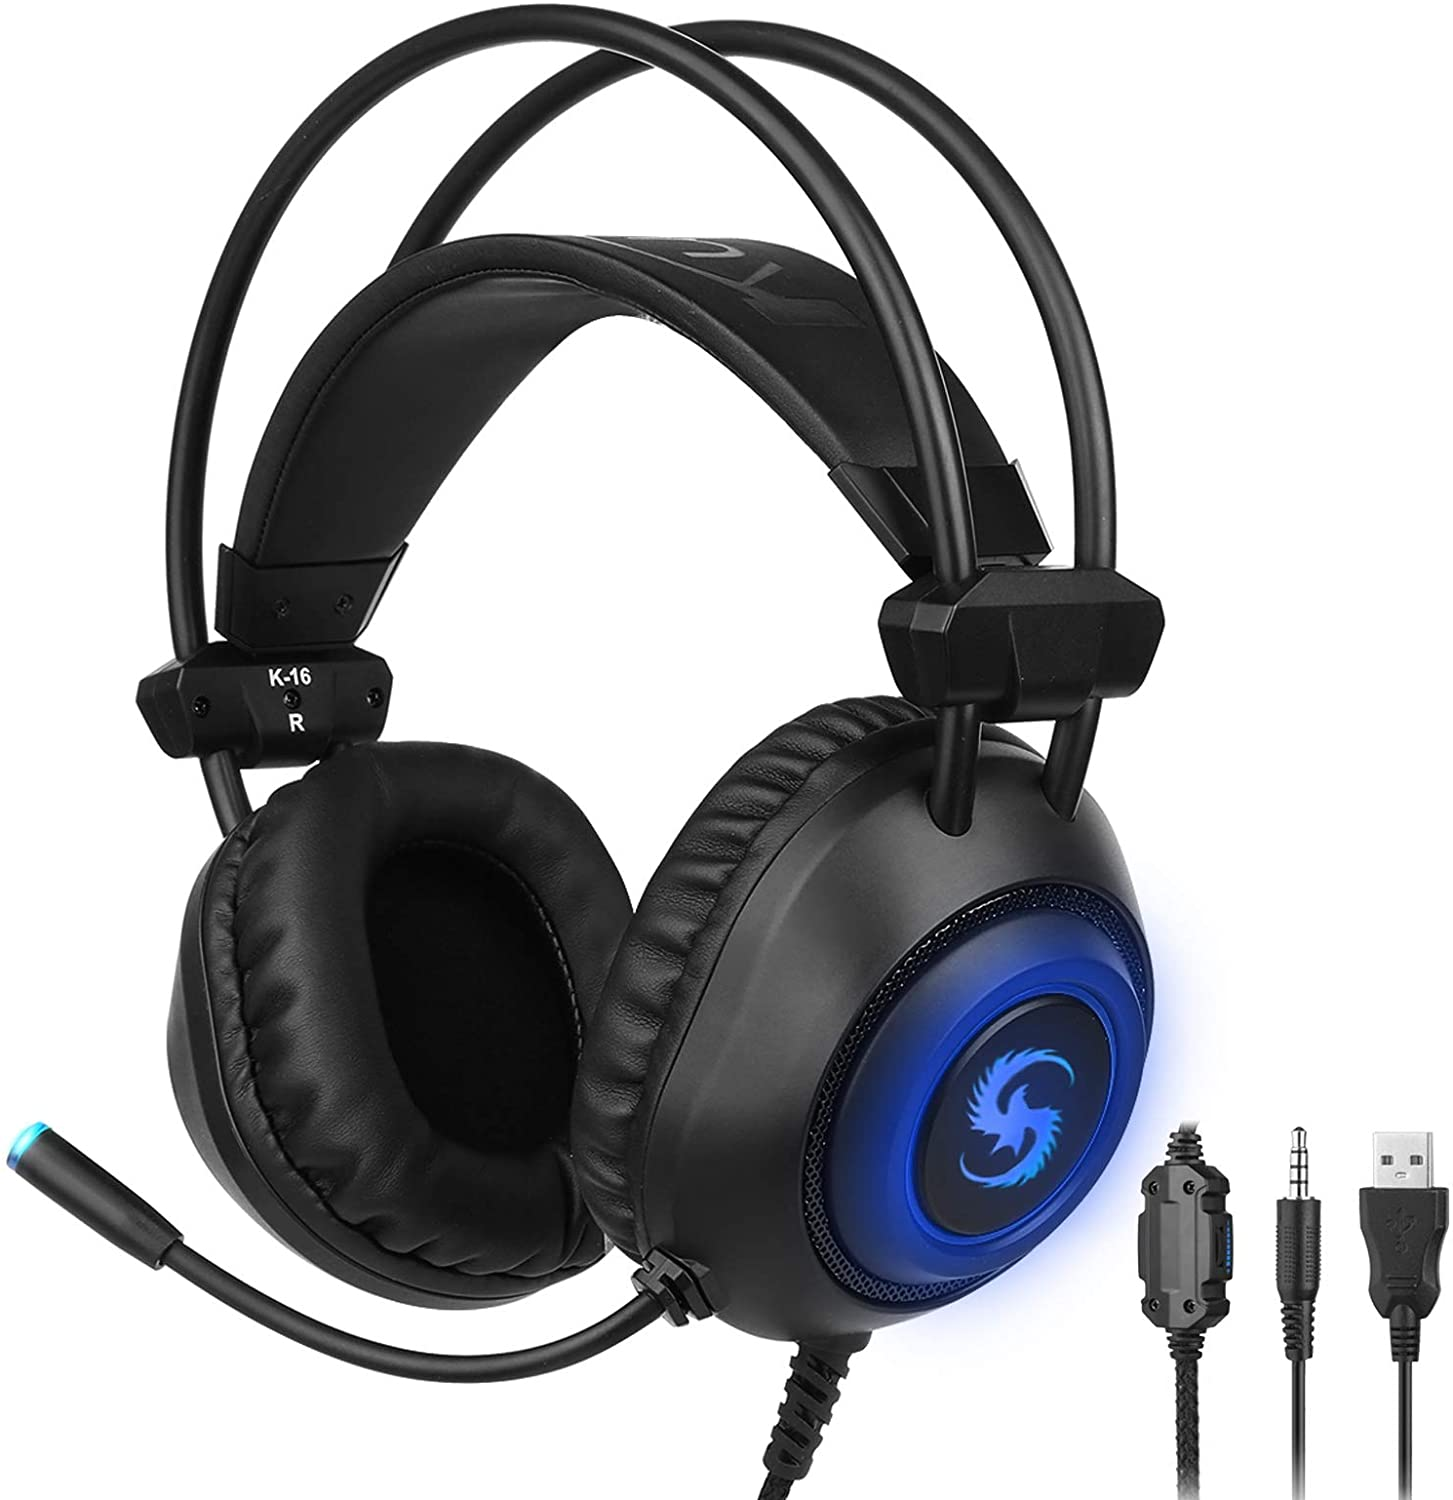 Gaming Headset PS4 Headset Over Ear Headphones Soft Earmuffs Noise Cancelling Stereo Earphone with Mic LED Light Immersive Audio Gamer Gaming Headphone for PS4 PC Laptop Mac NS Computer